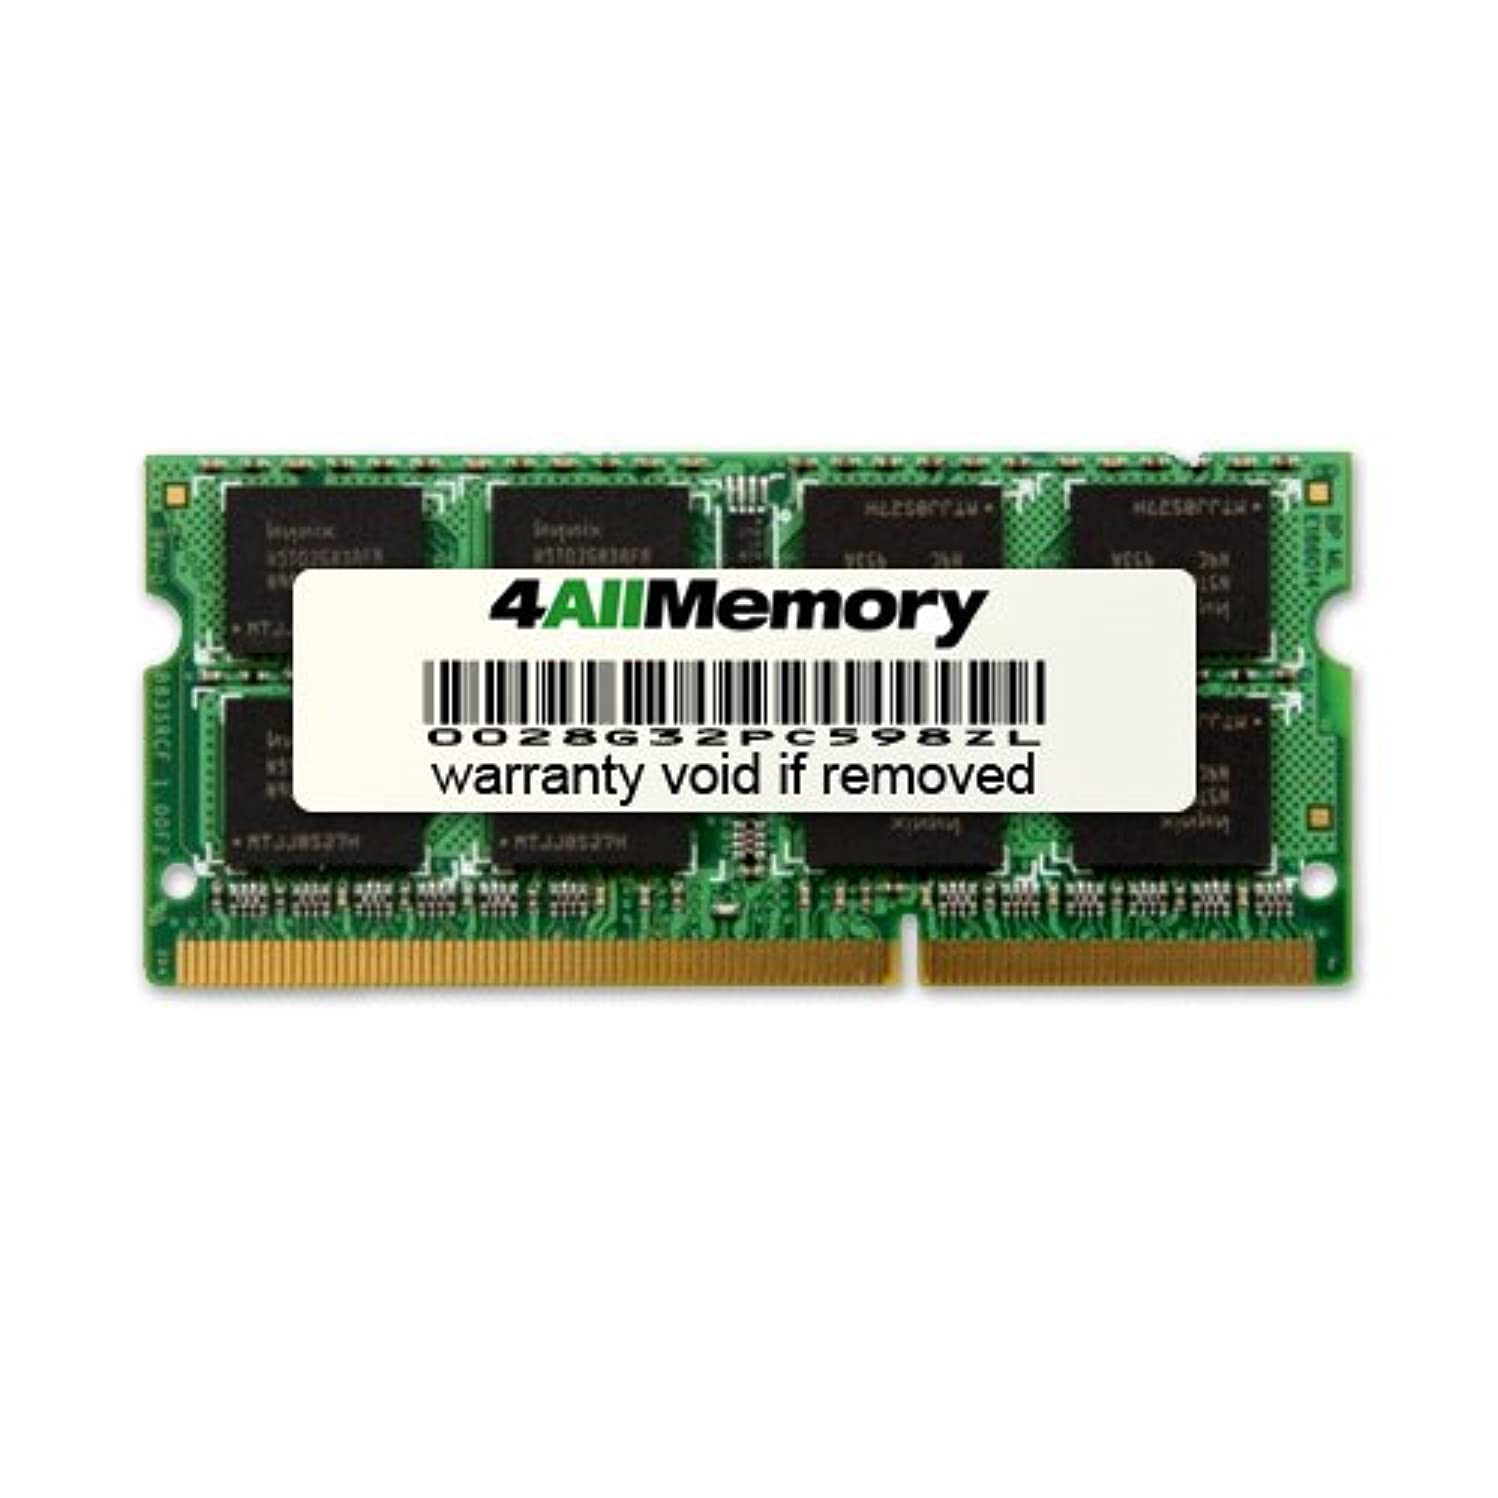 4GB DDR3-1333 (PC3-10600) RAM Memory Upgrade for the Dell Inspiron N7110